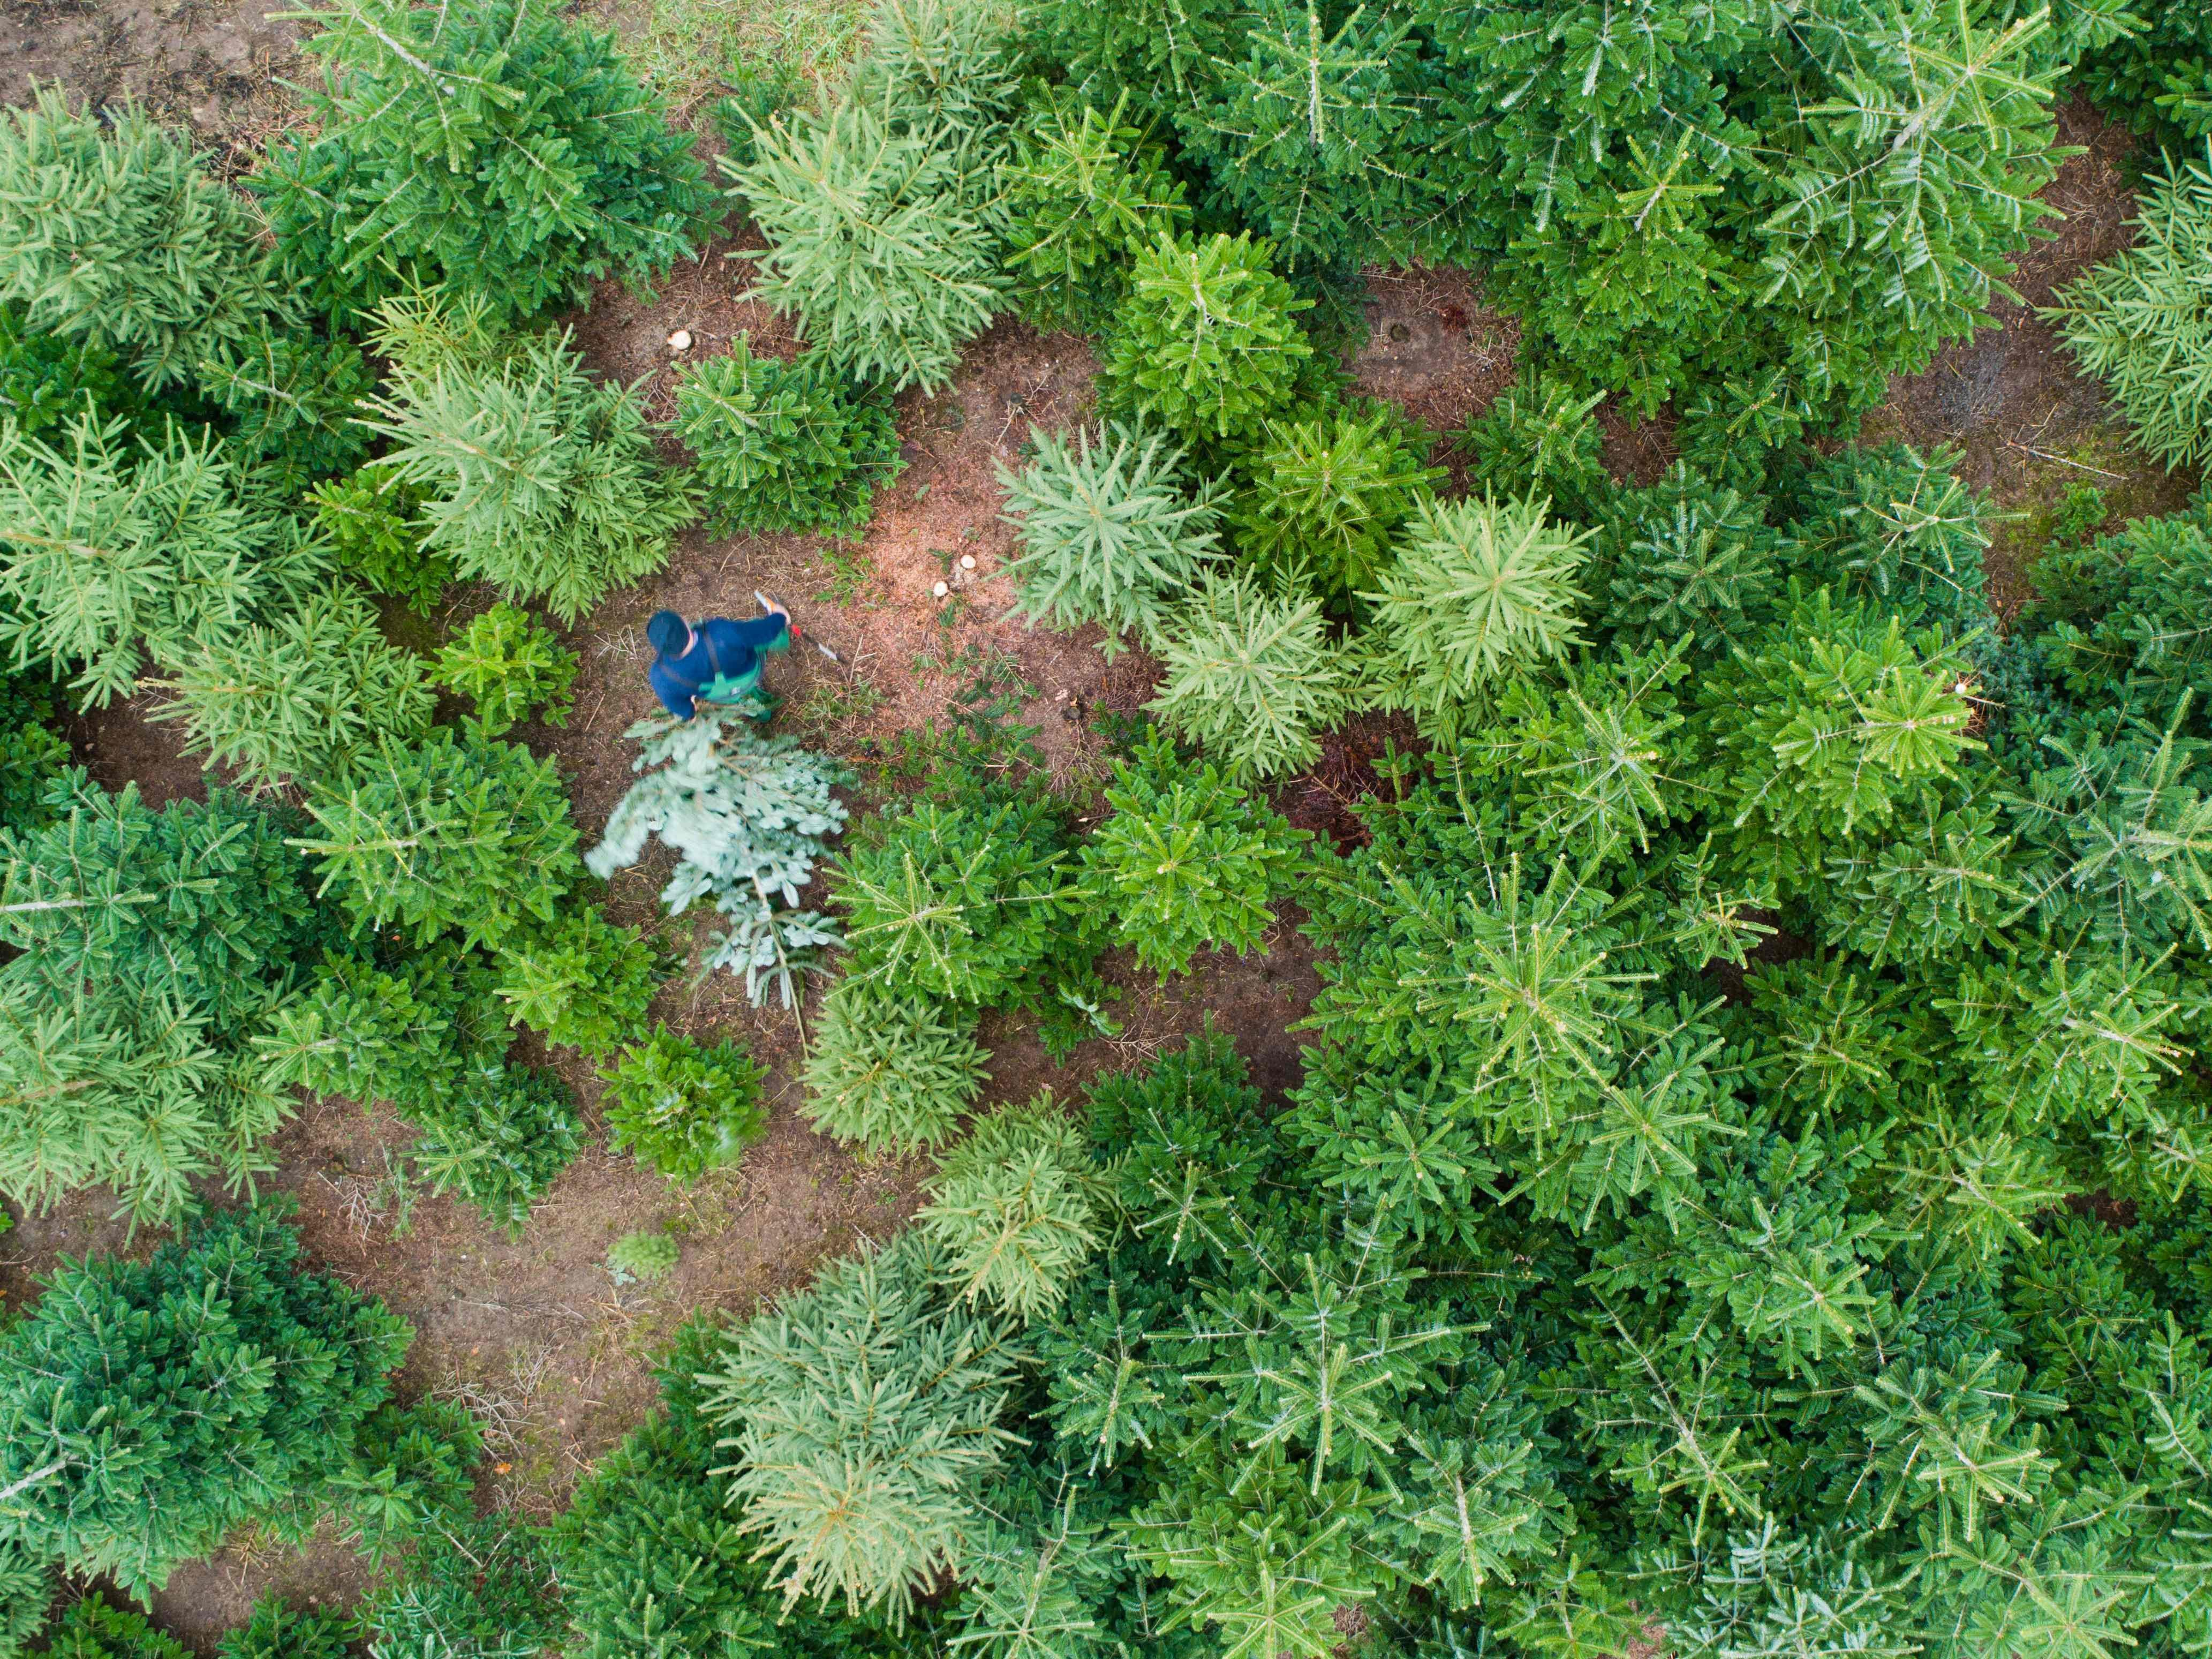 Aerial view taken on Dec. 18, 2018 shows a man transporting a Christmas tree at the Hof Backhaus fir tree plantation in Negenborn, Germany.